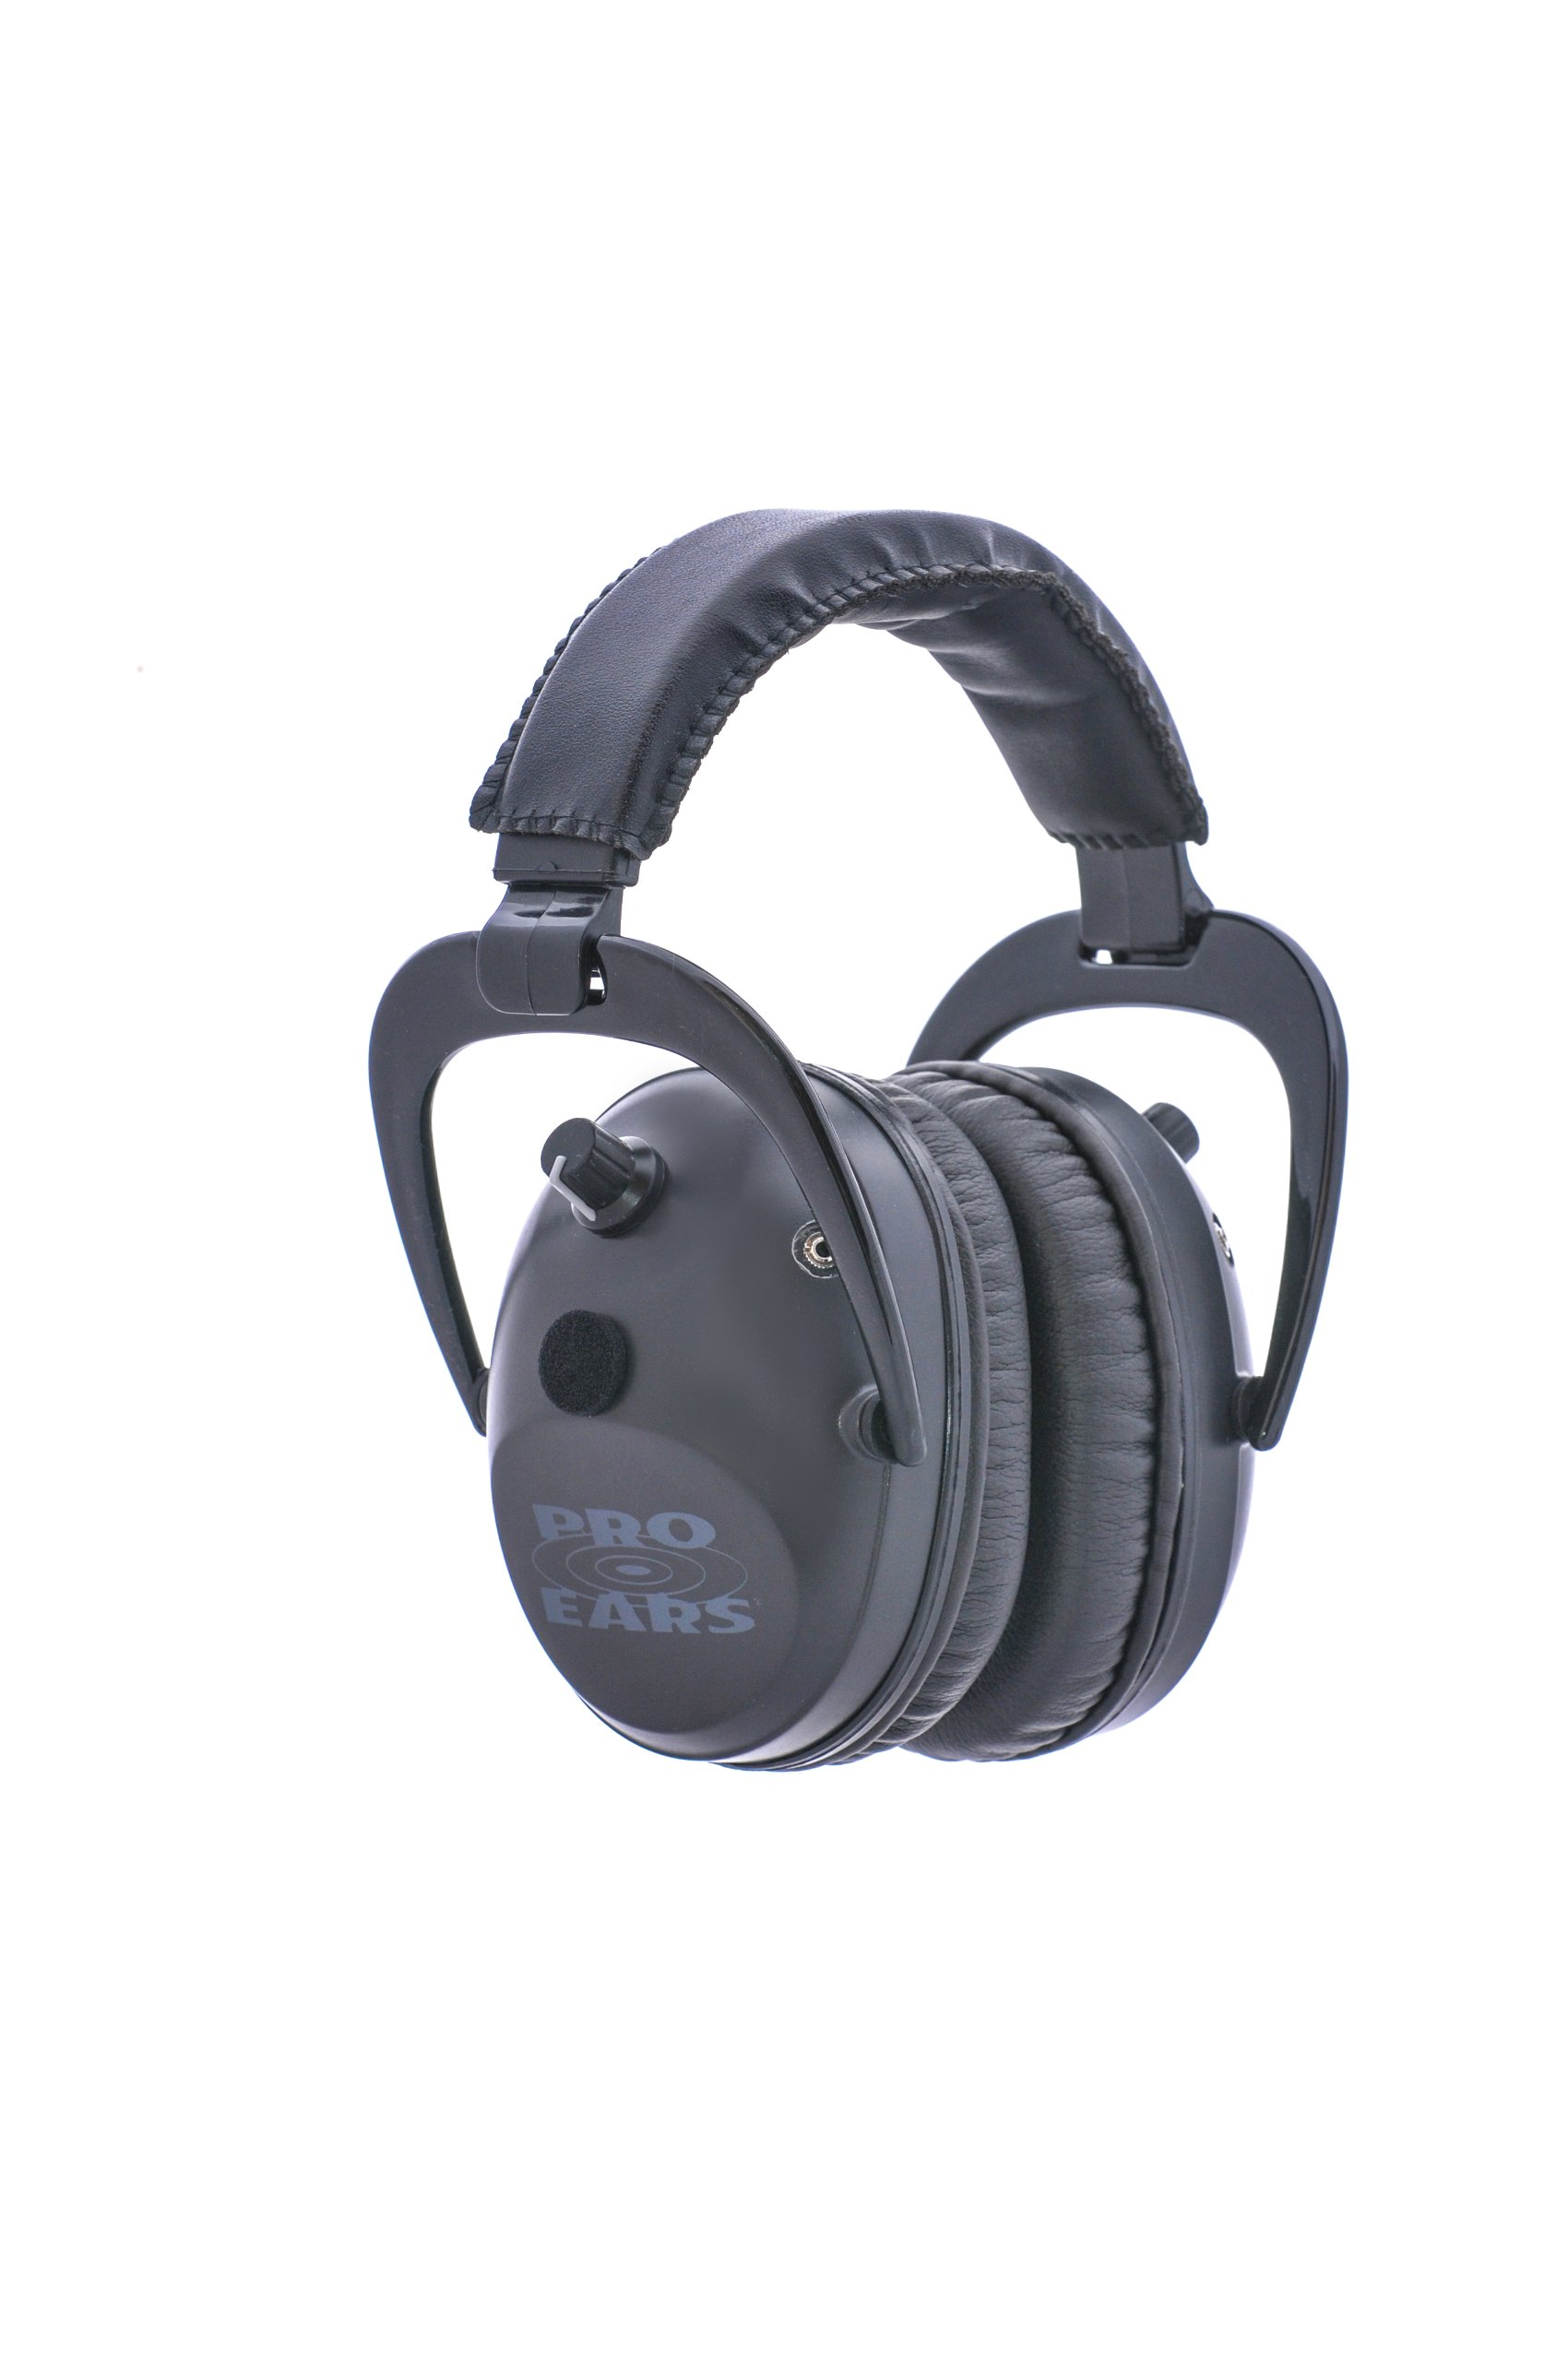 Pro Ears - Pro Tac Plus Gold - Military Grade Electronic Hearing Protection and Amplification - NRR 26 - Ear Muffs - Lithium 123a Batteries - Black by Pro Ears